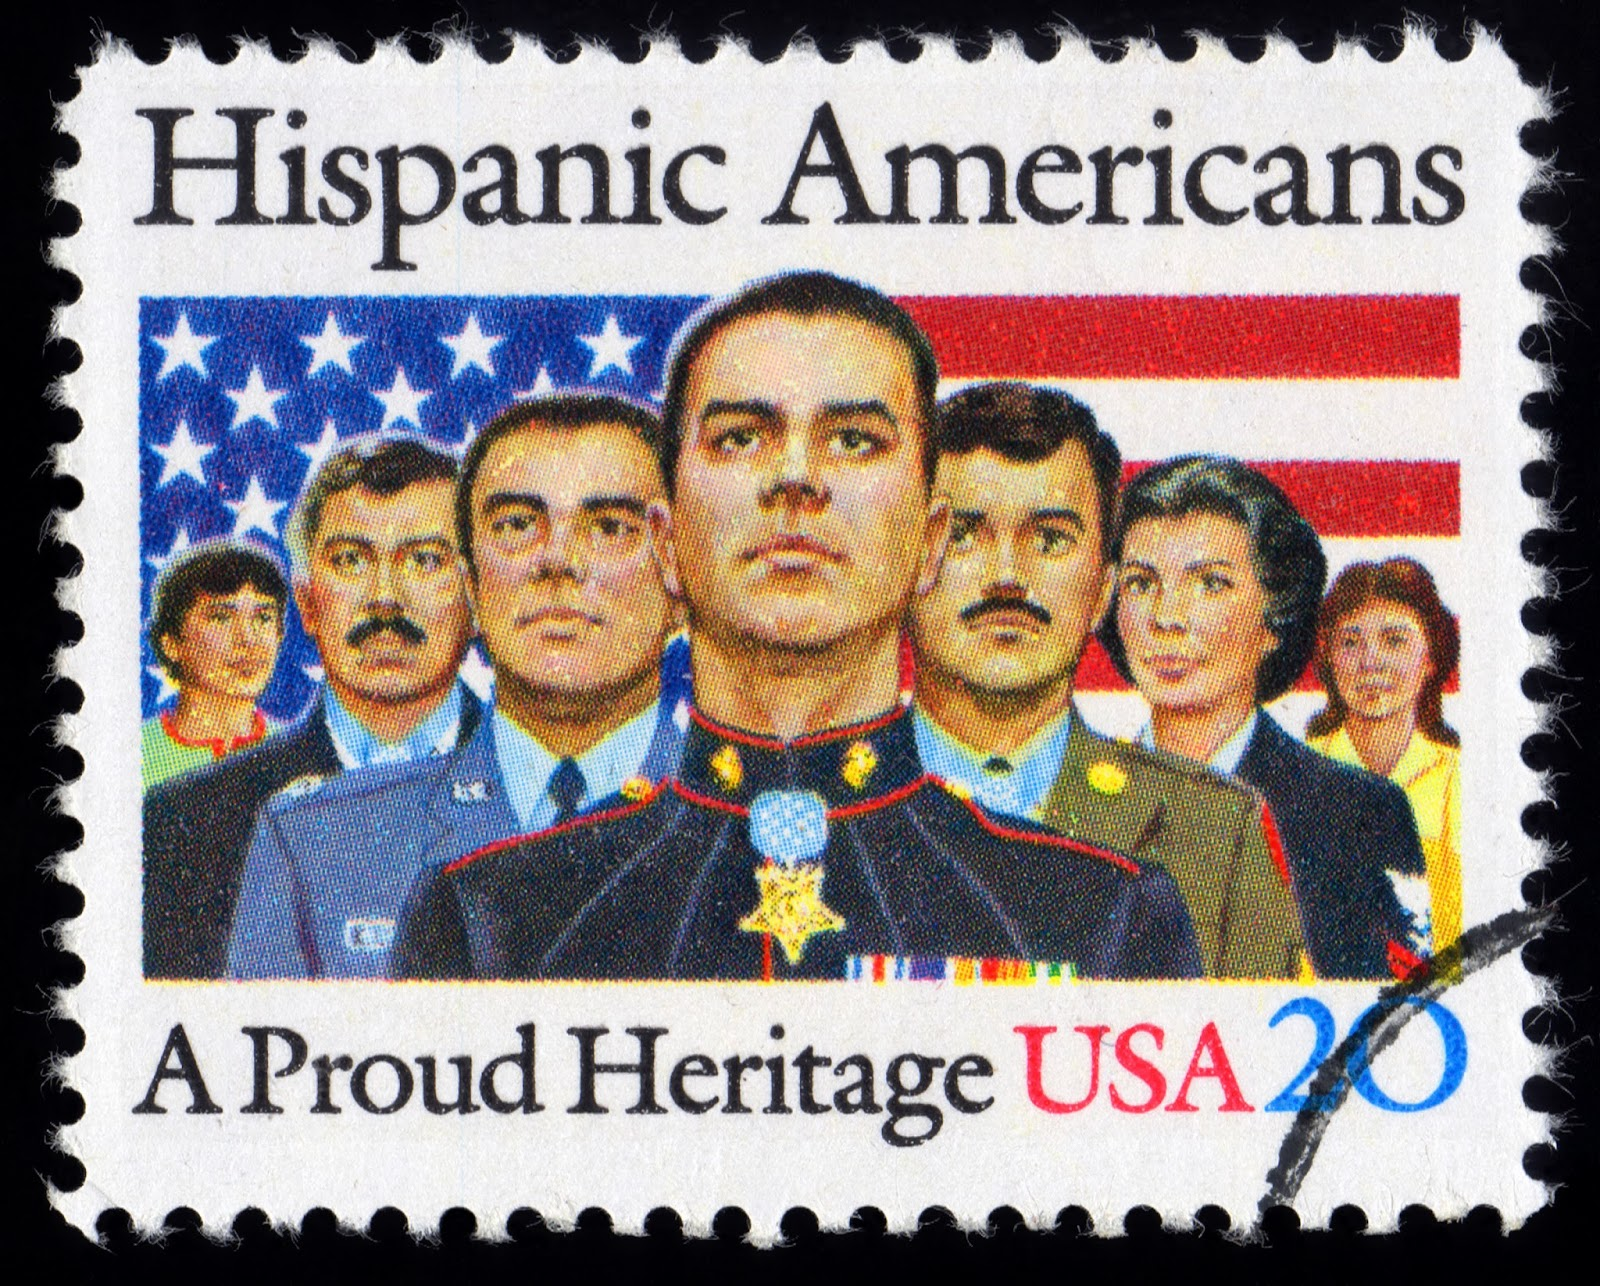 HISPANIC AMERICANS' Puts Faces on over 500 Years of History